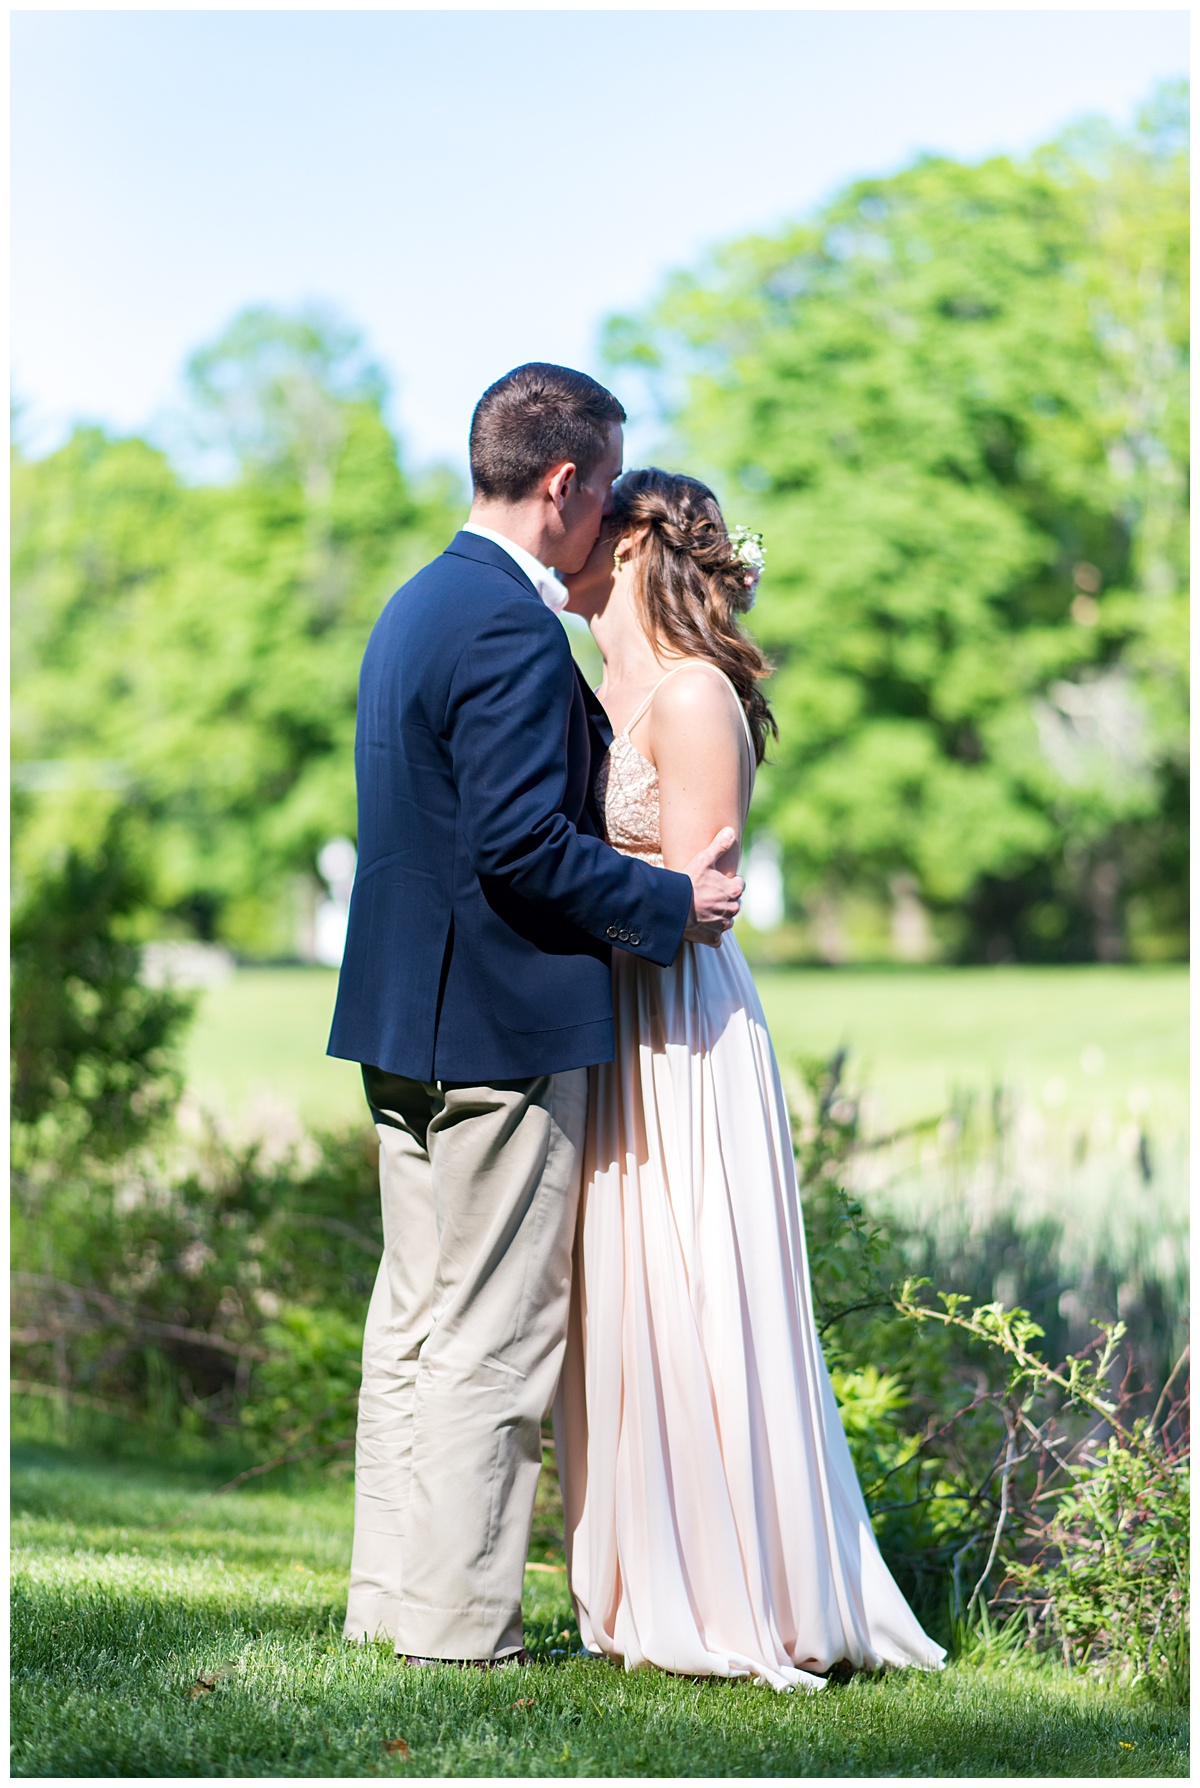 Pierce House wedding photographer 1.jpg